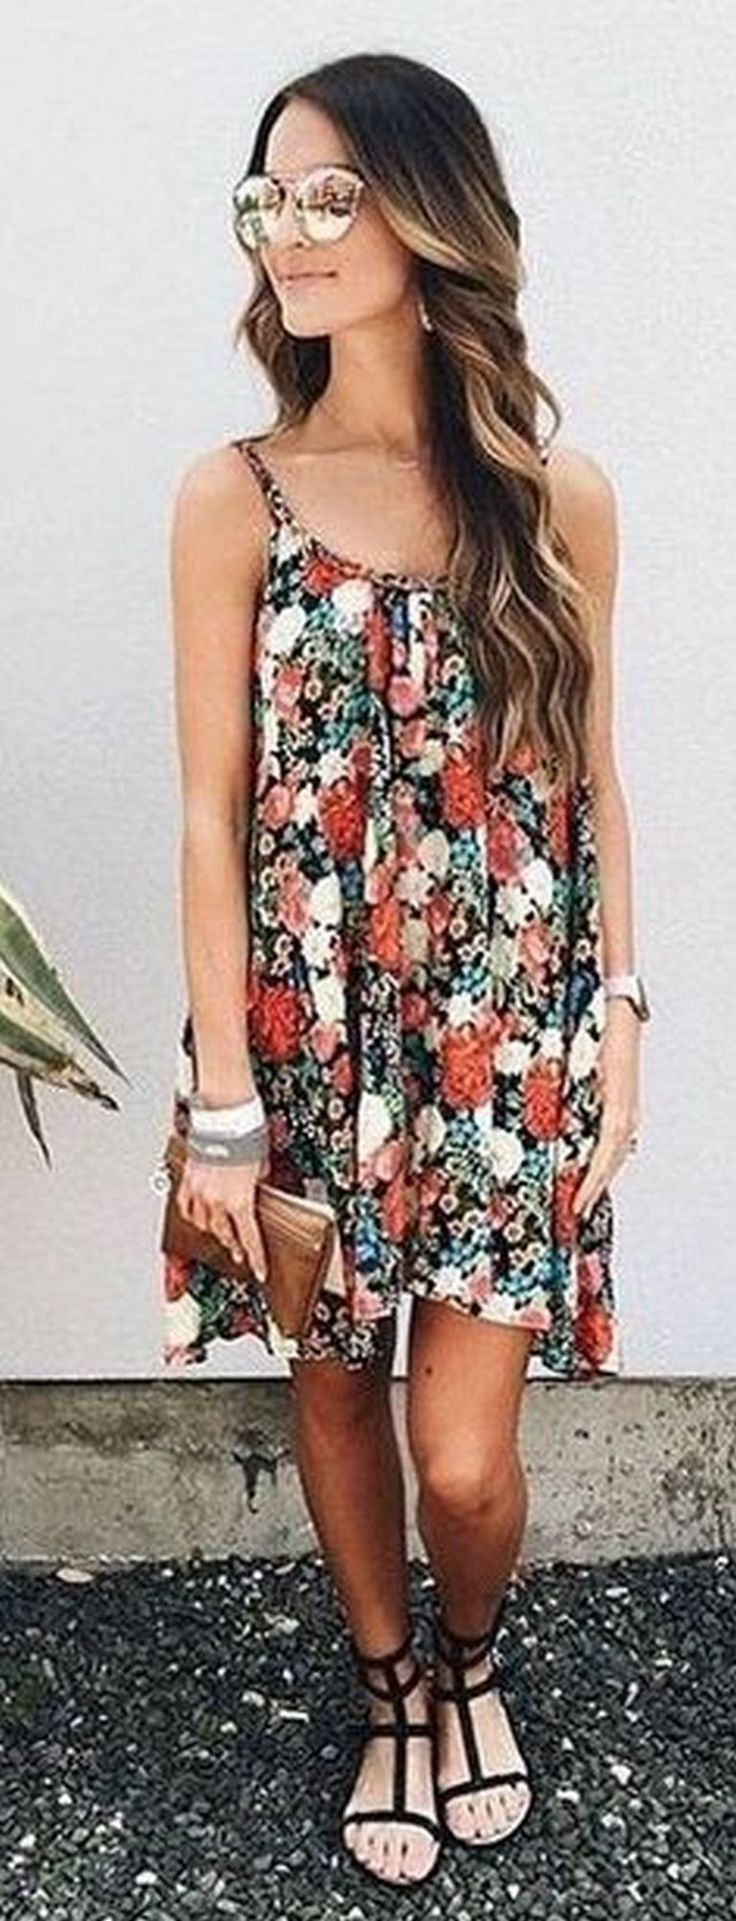 Today I'm happy to be a variety of information about the cute dresses for you. Right now I have collected approximately 90 best pictures to cute dress...